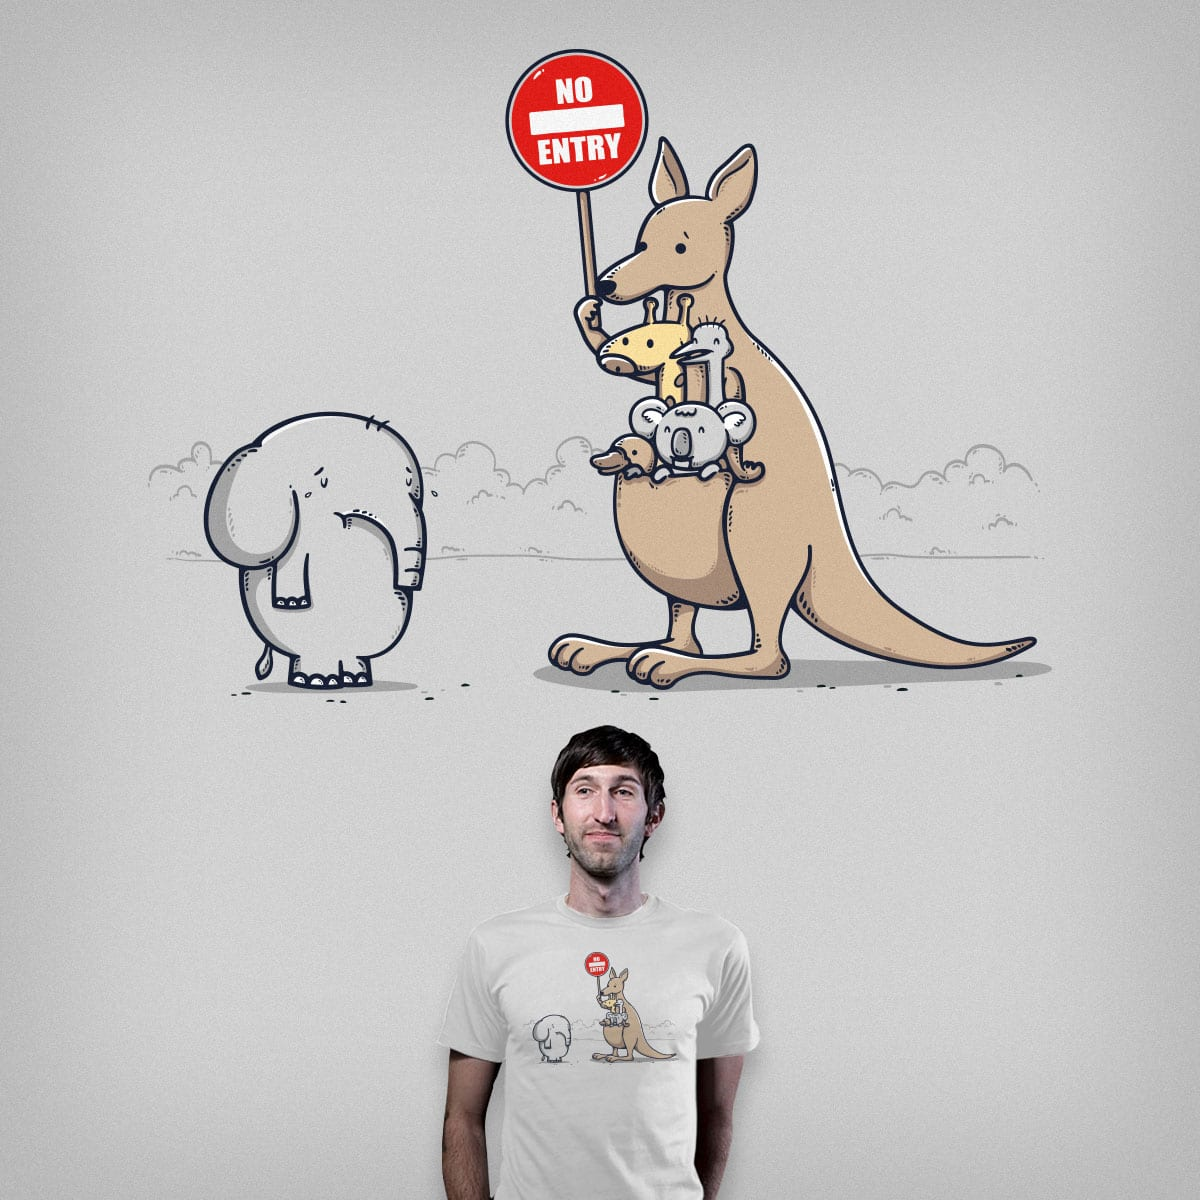 No Vacancy by Robo Rat and bandy on Threadless